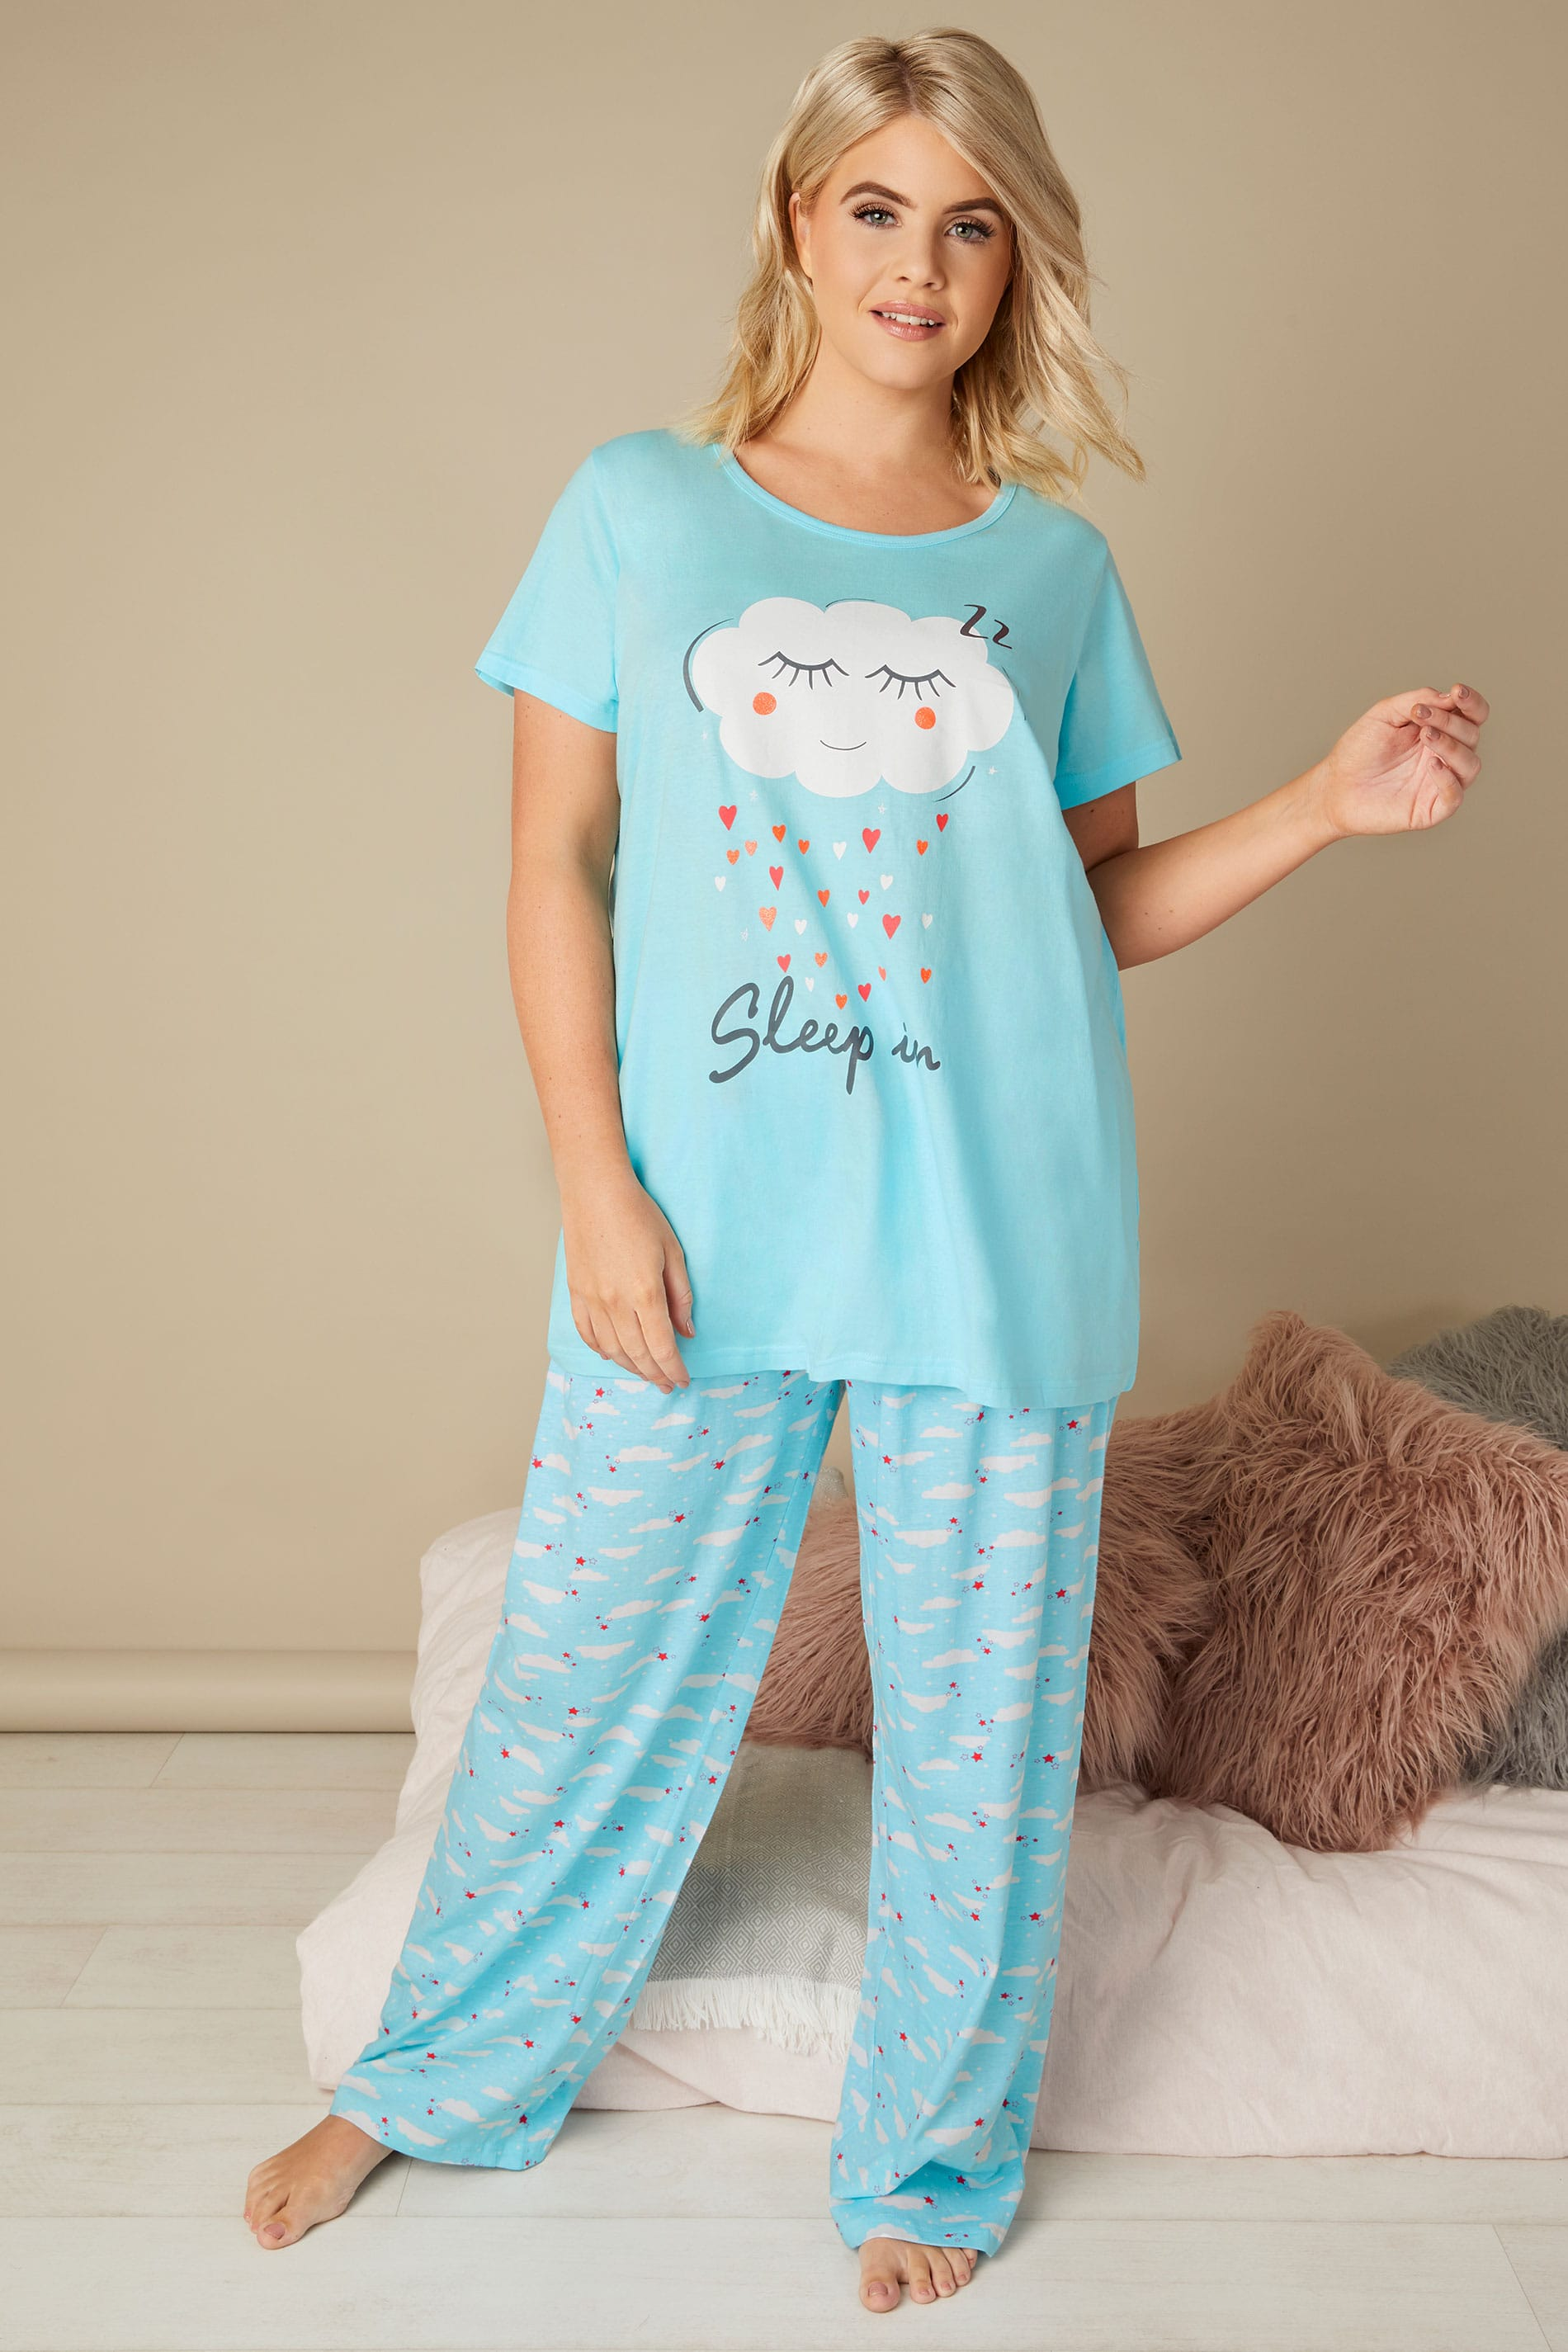 paquet de 2 haut et bas de pyjama bleu avec slogan nuage taille 44 64s. Black Bedroom Furniture Sets. Home Design Ideas